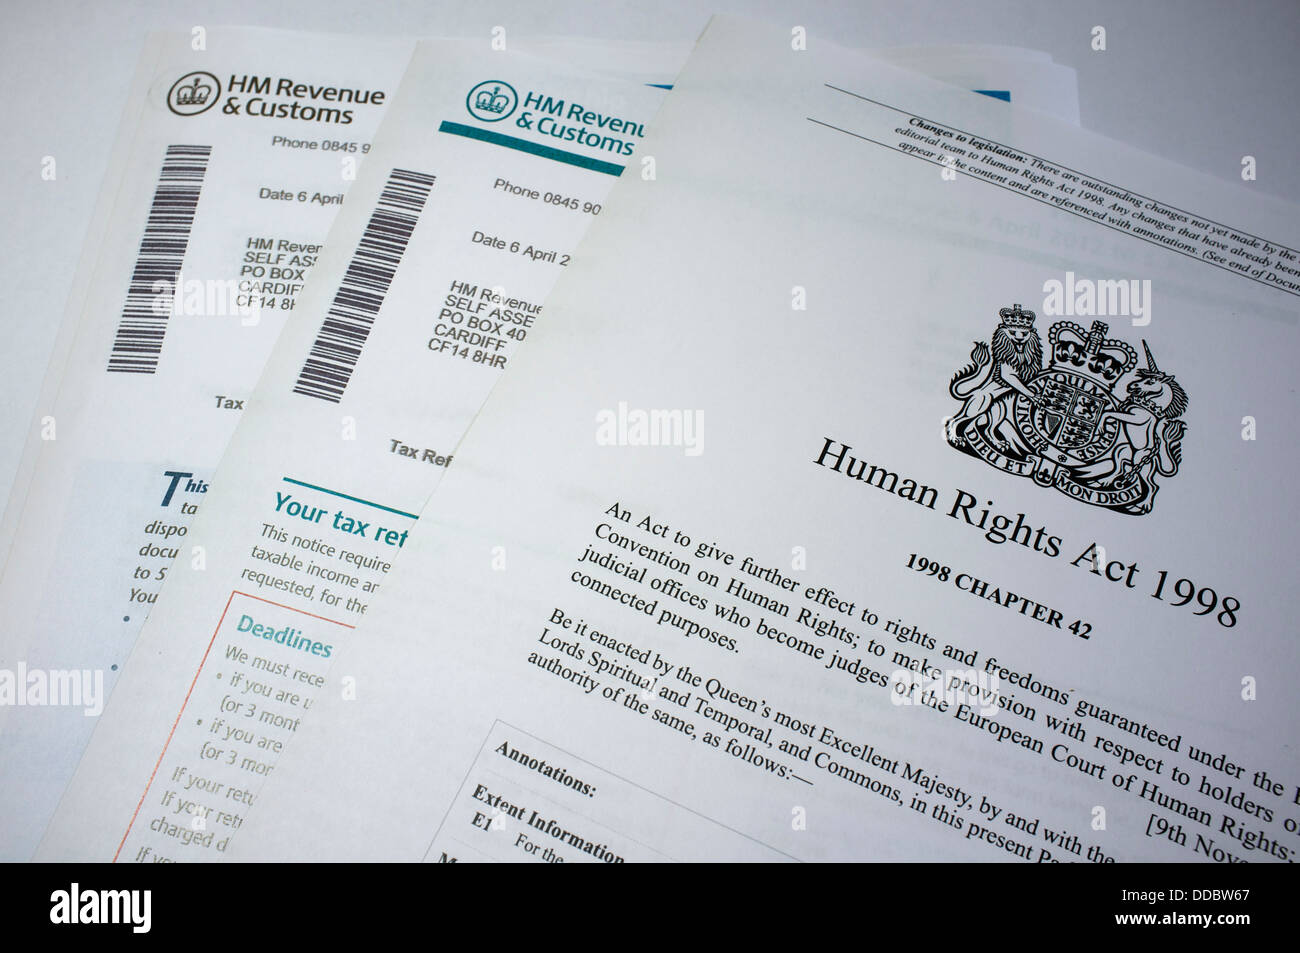 Hmrc Income Tax Calculator >> Hmrc Forms Stock Photos & Hmrc Forms Stock Images - Alamy